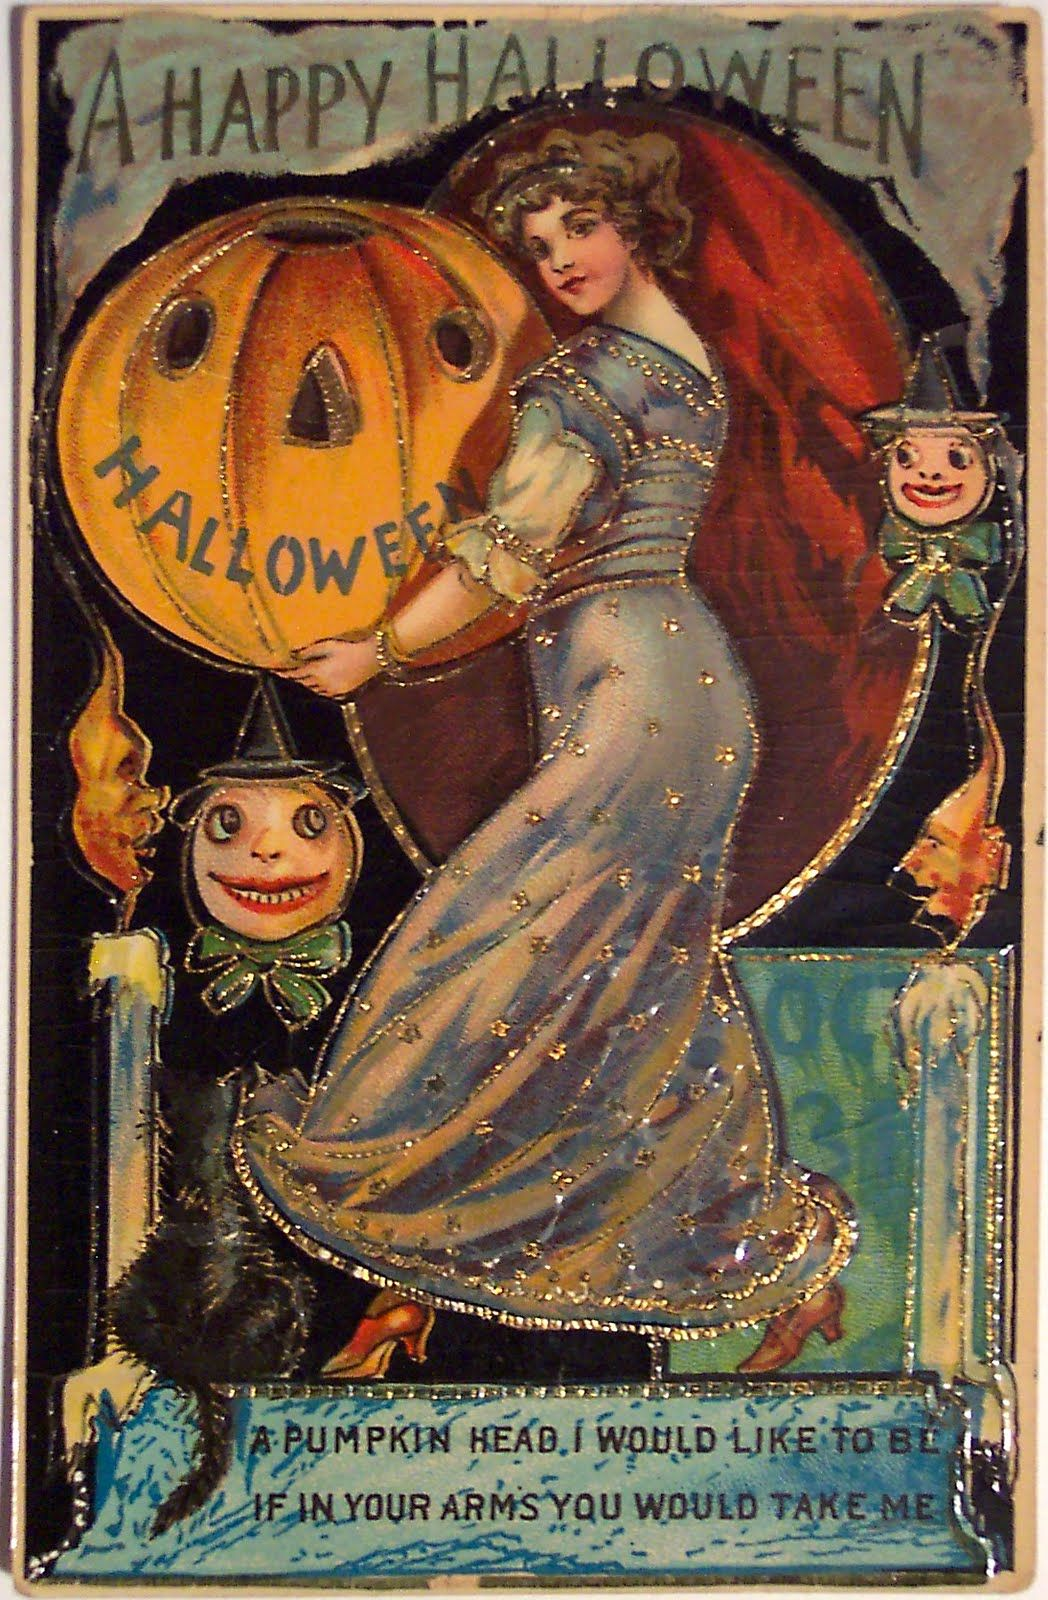 Vintage Halloween Cards | Vintage Holiday Images & Cards ...